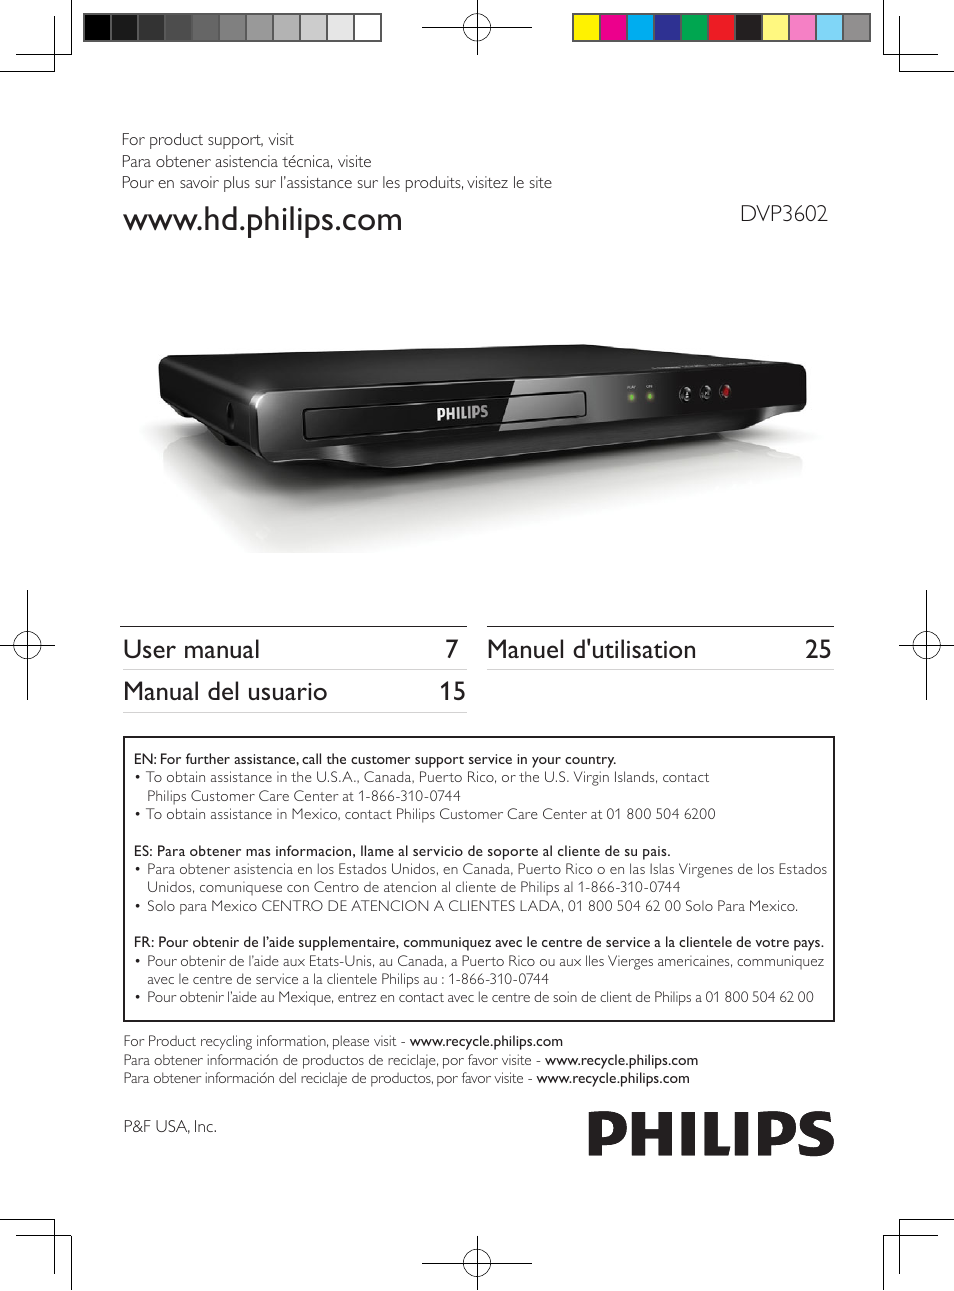 philips dvp3602 f7 user manual 16 pages original mode rh manualsdir com Philips User Guides Philips DVD Player Manual